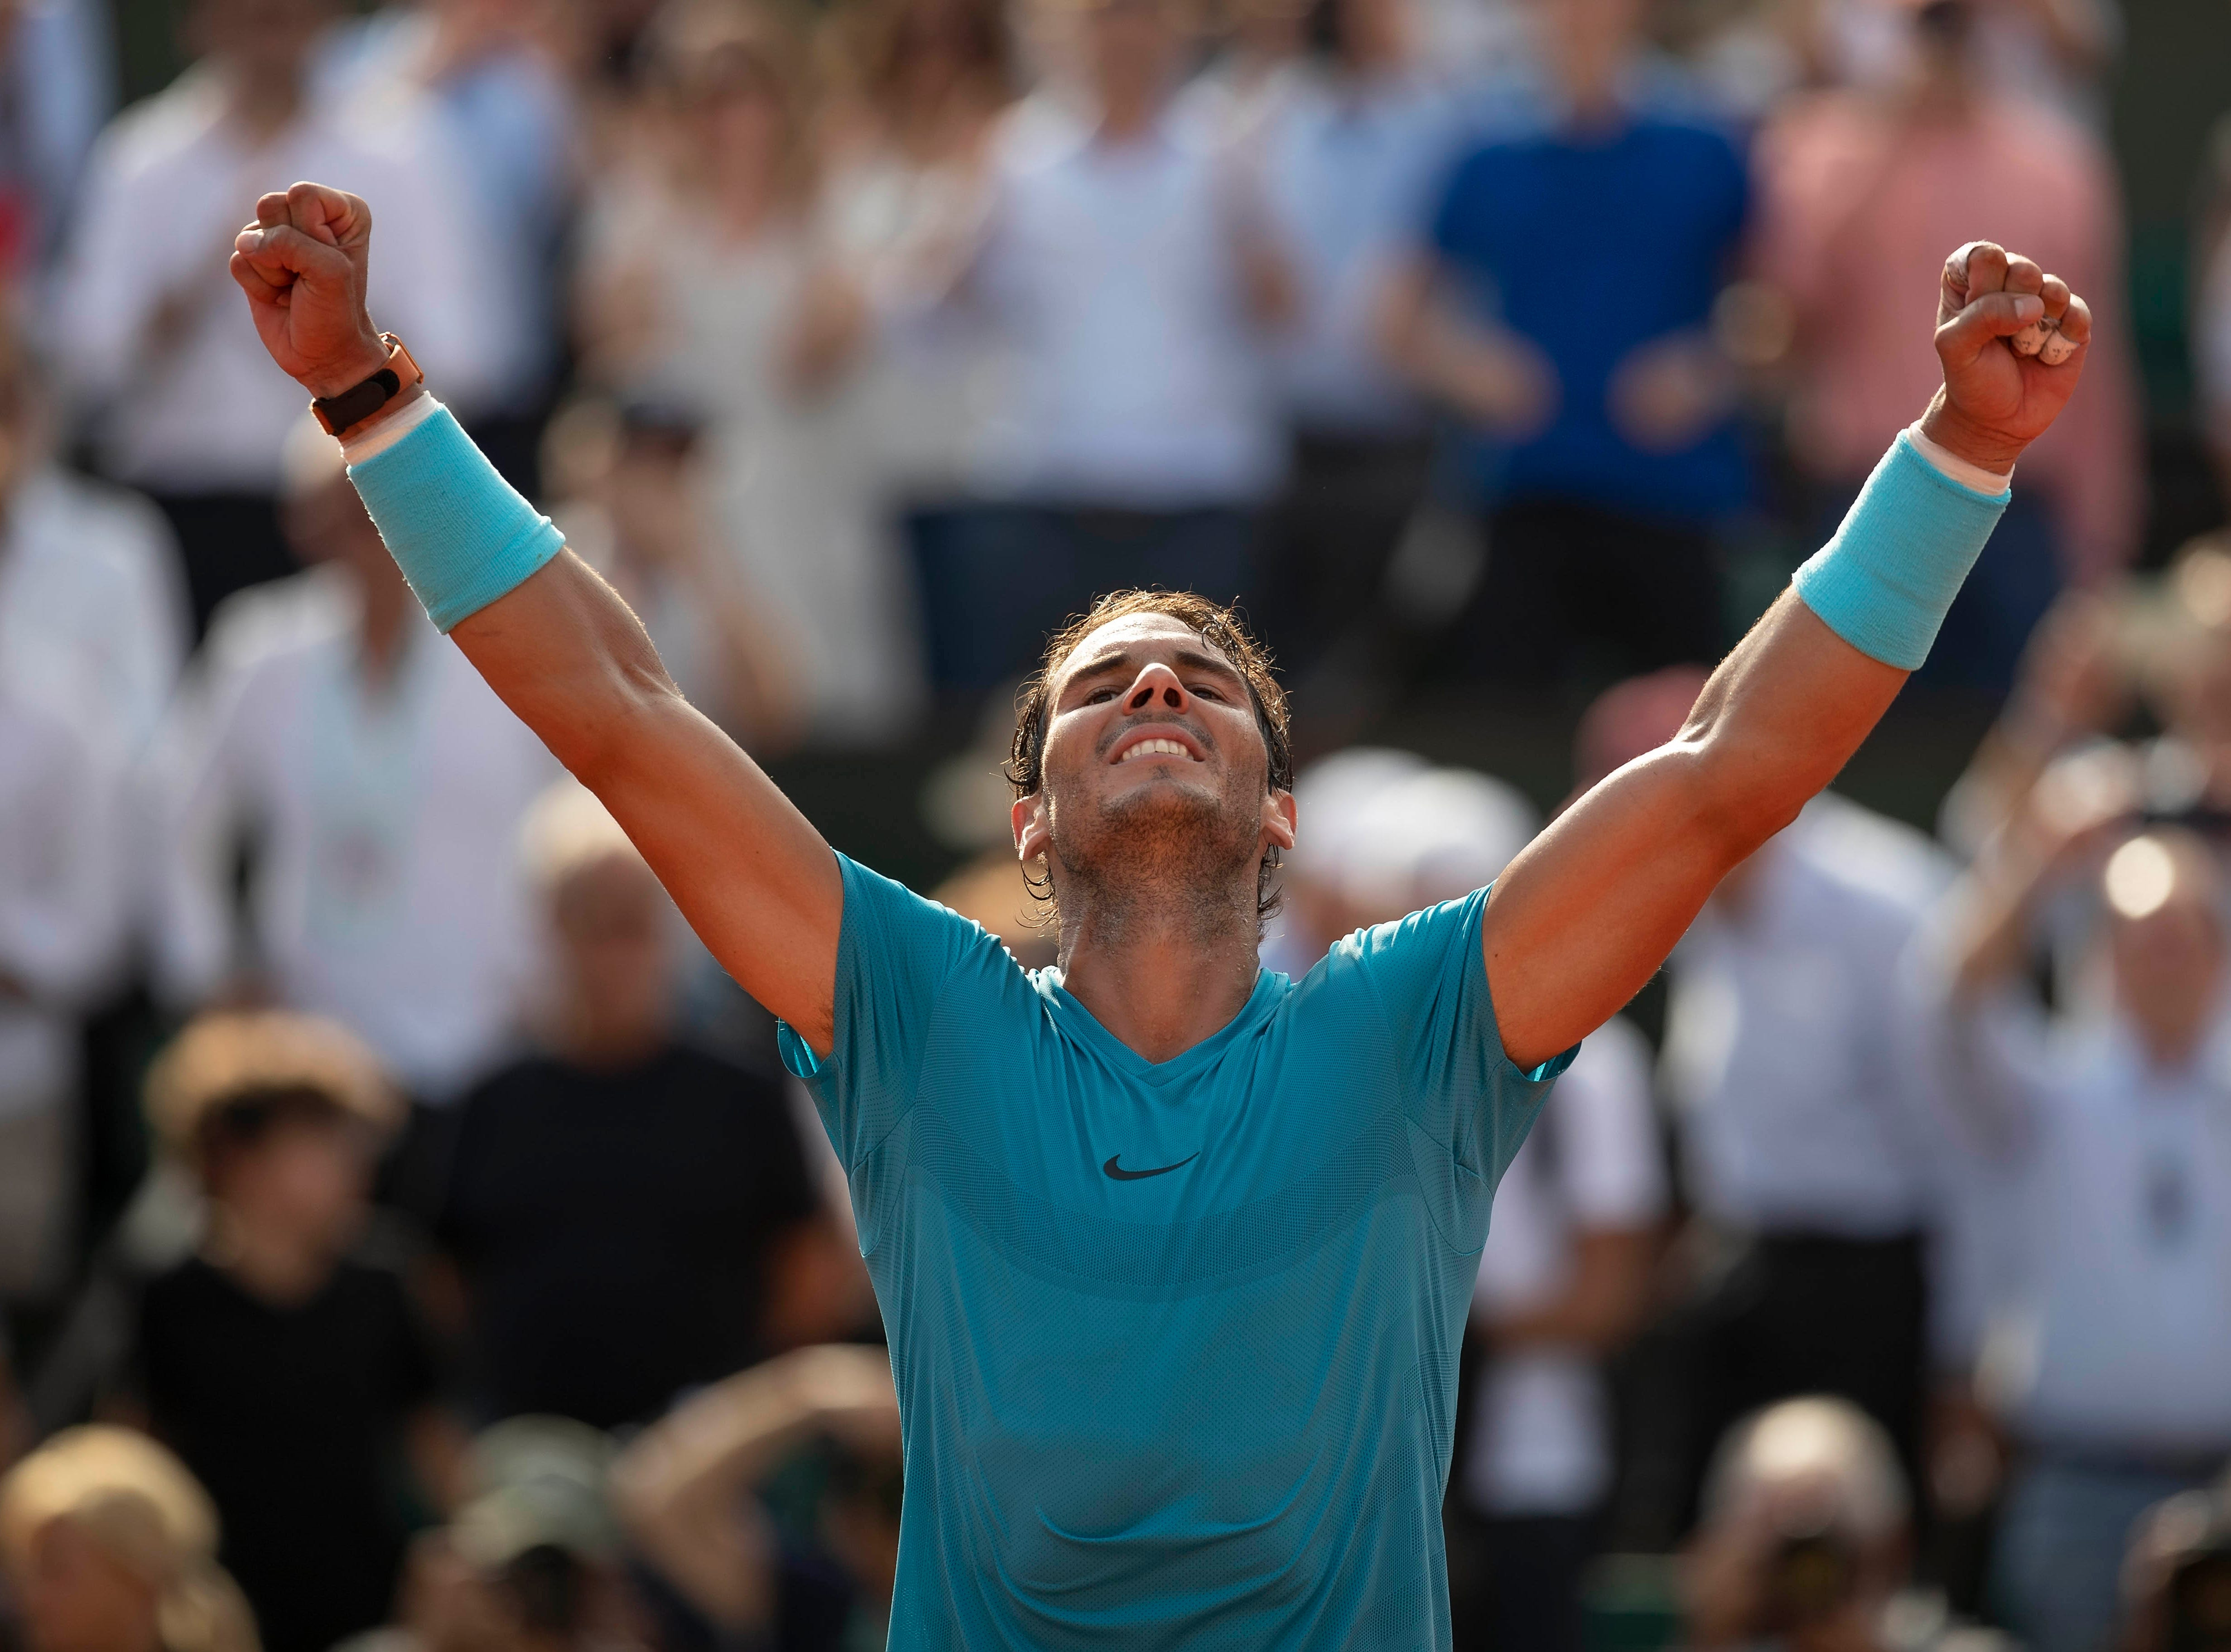 June 8: Rafael Nadal (ESP) celebrates match point during his match against Juan Martin Del Potro (ARG) on Day 13 of the French Open. He would go on to win the championship again.